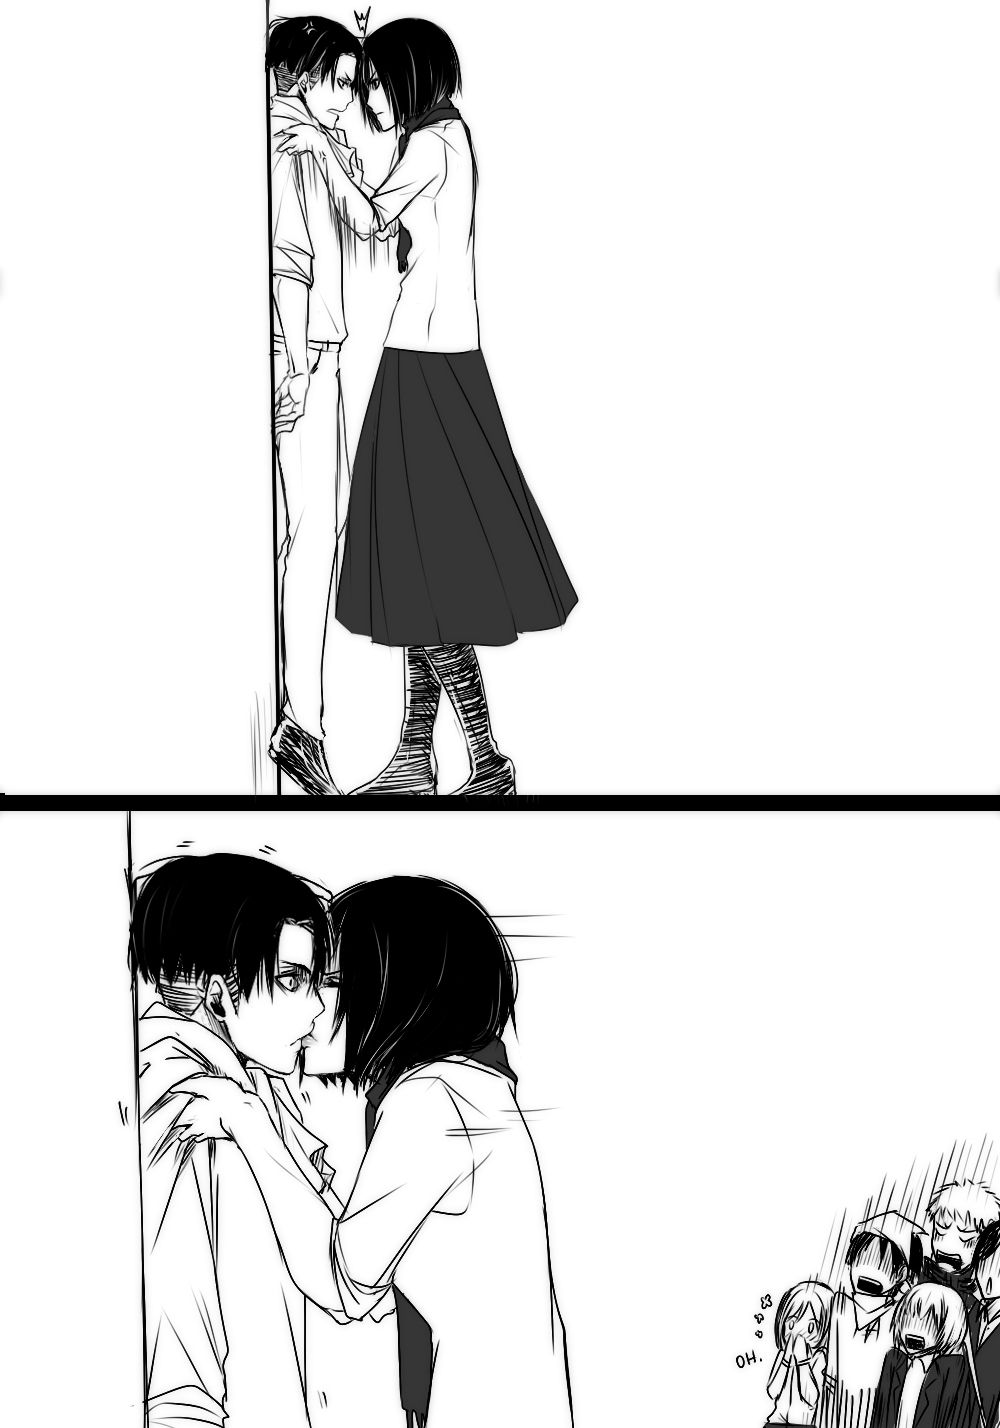 mikasa and levi relationship advice